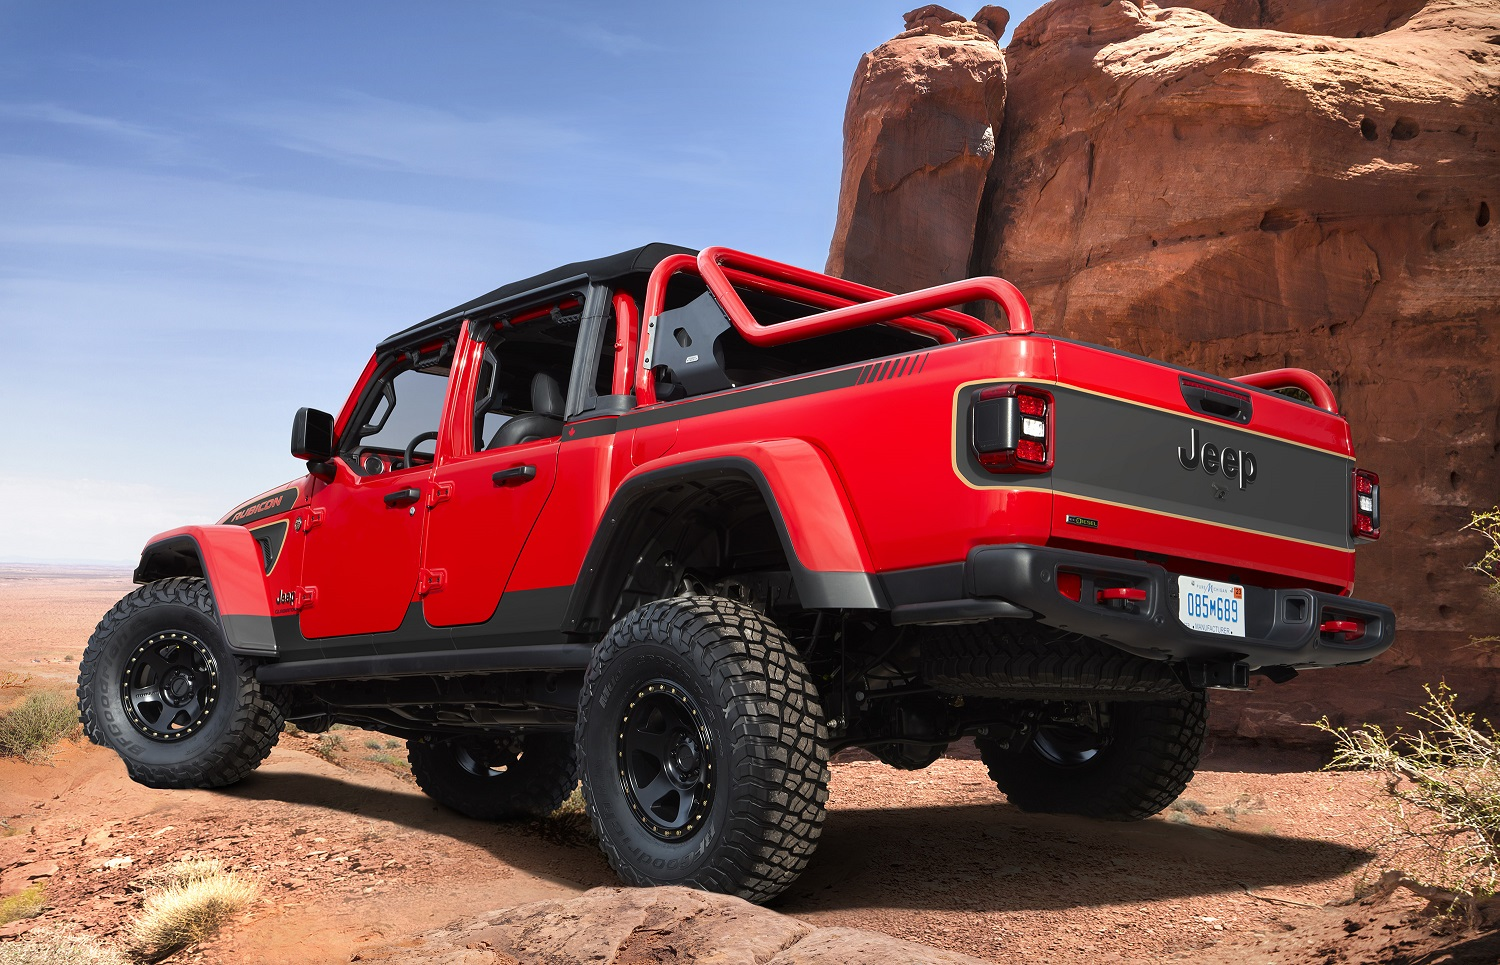 Jeep Gladiator Red Bare